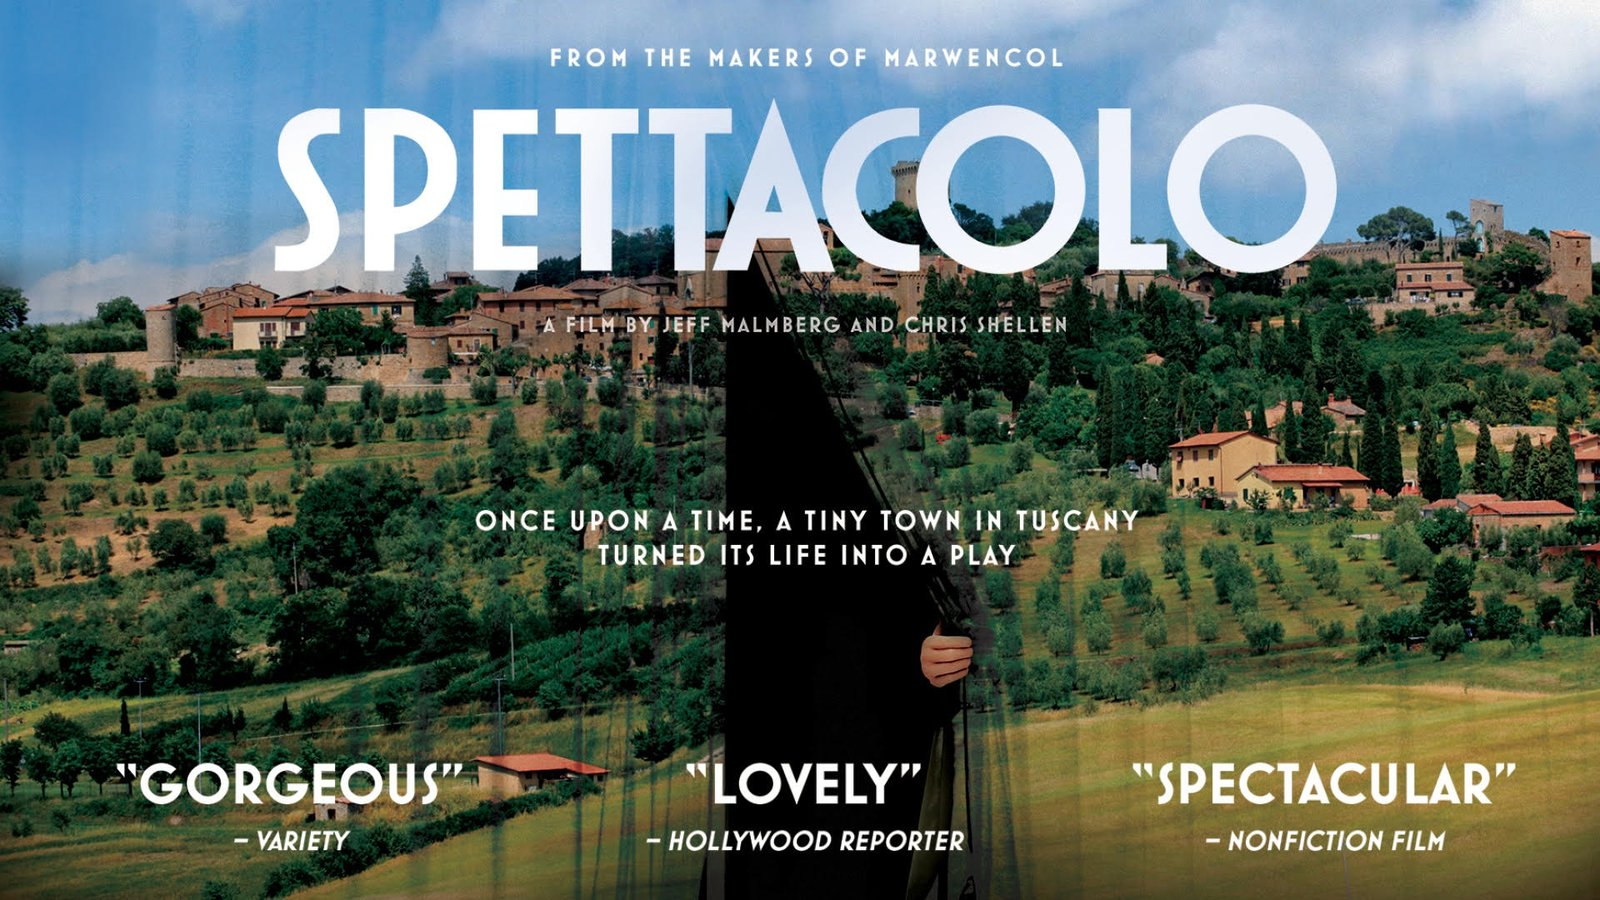 Spettacolo - Tuscan Villagers Confront their Problems through Theater